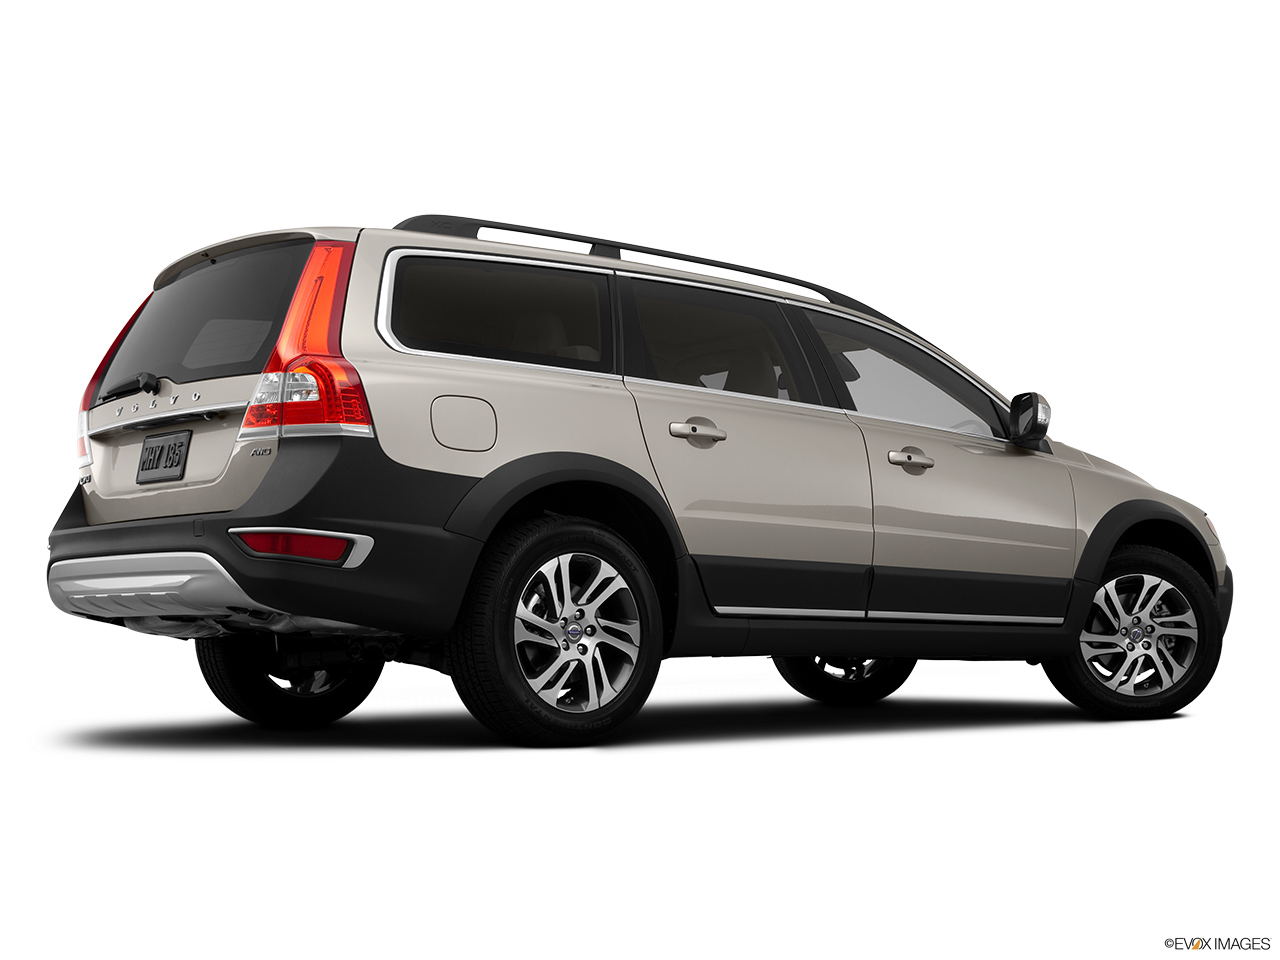 2014 Volvo XC70 3.2 AWD Premier Plus Low/wide rear 5/8.